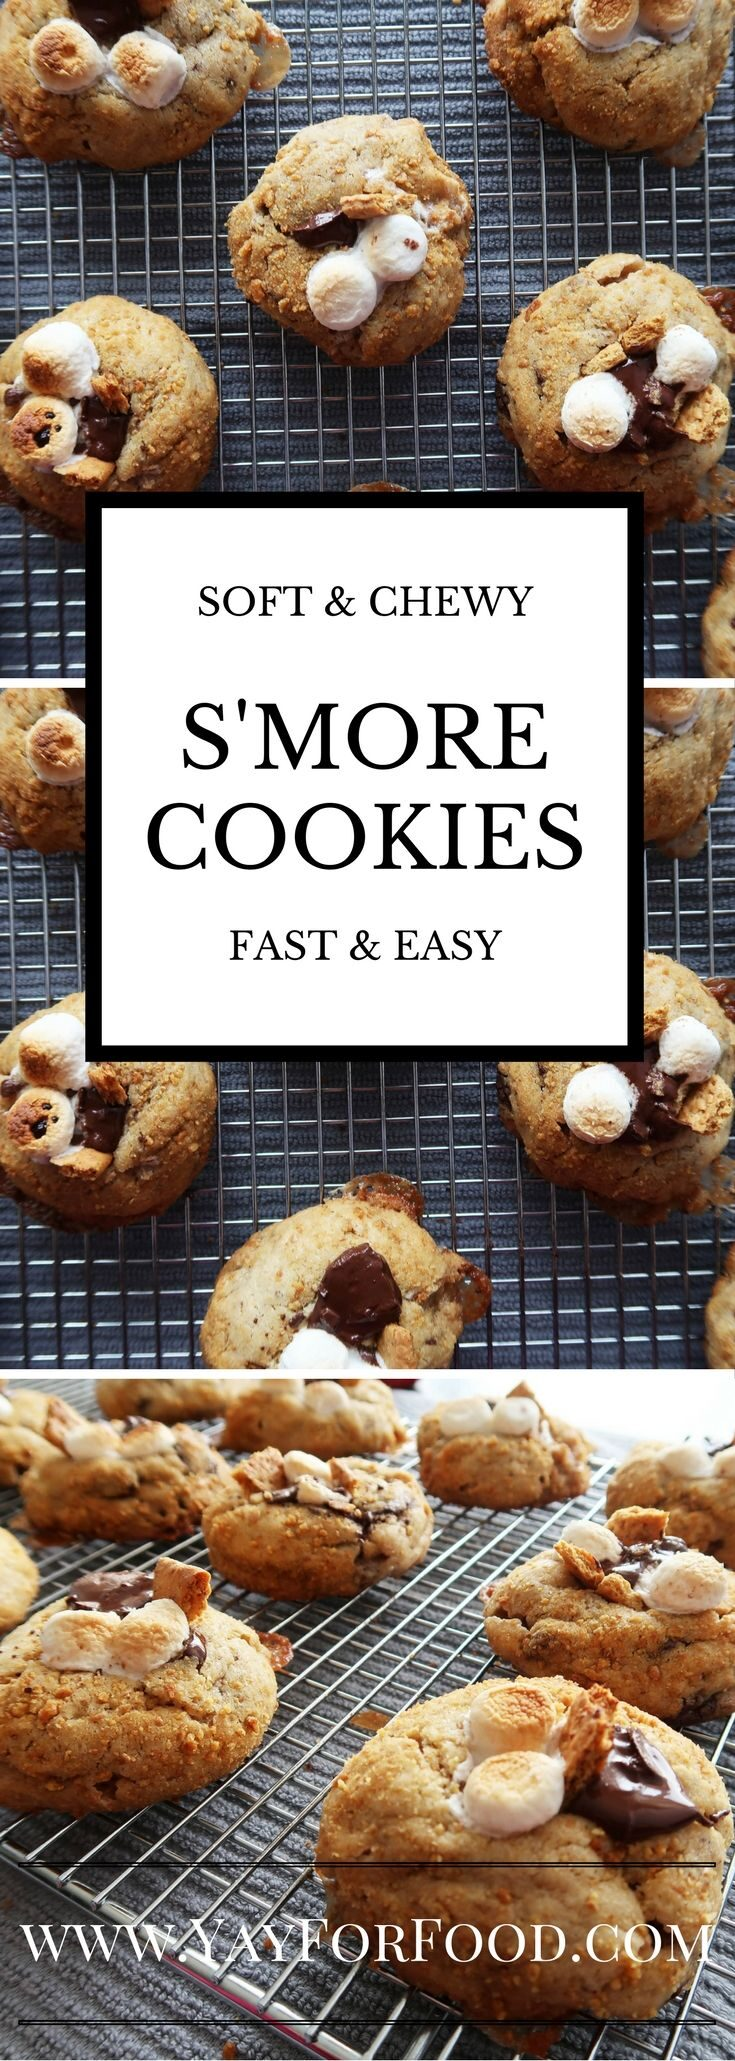 """<span style=""""font-size:14.6667px"""">Chocolate, marshmallows, and graham crackers! It's a s'more, but in delicious, soft and chewy cookie form!</span>"""